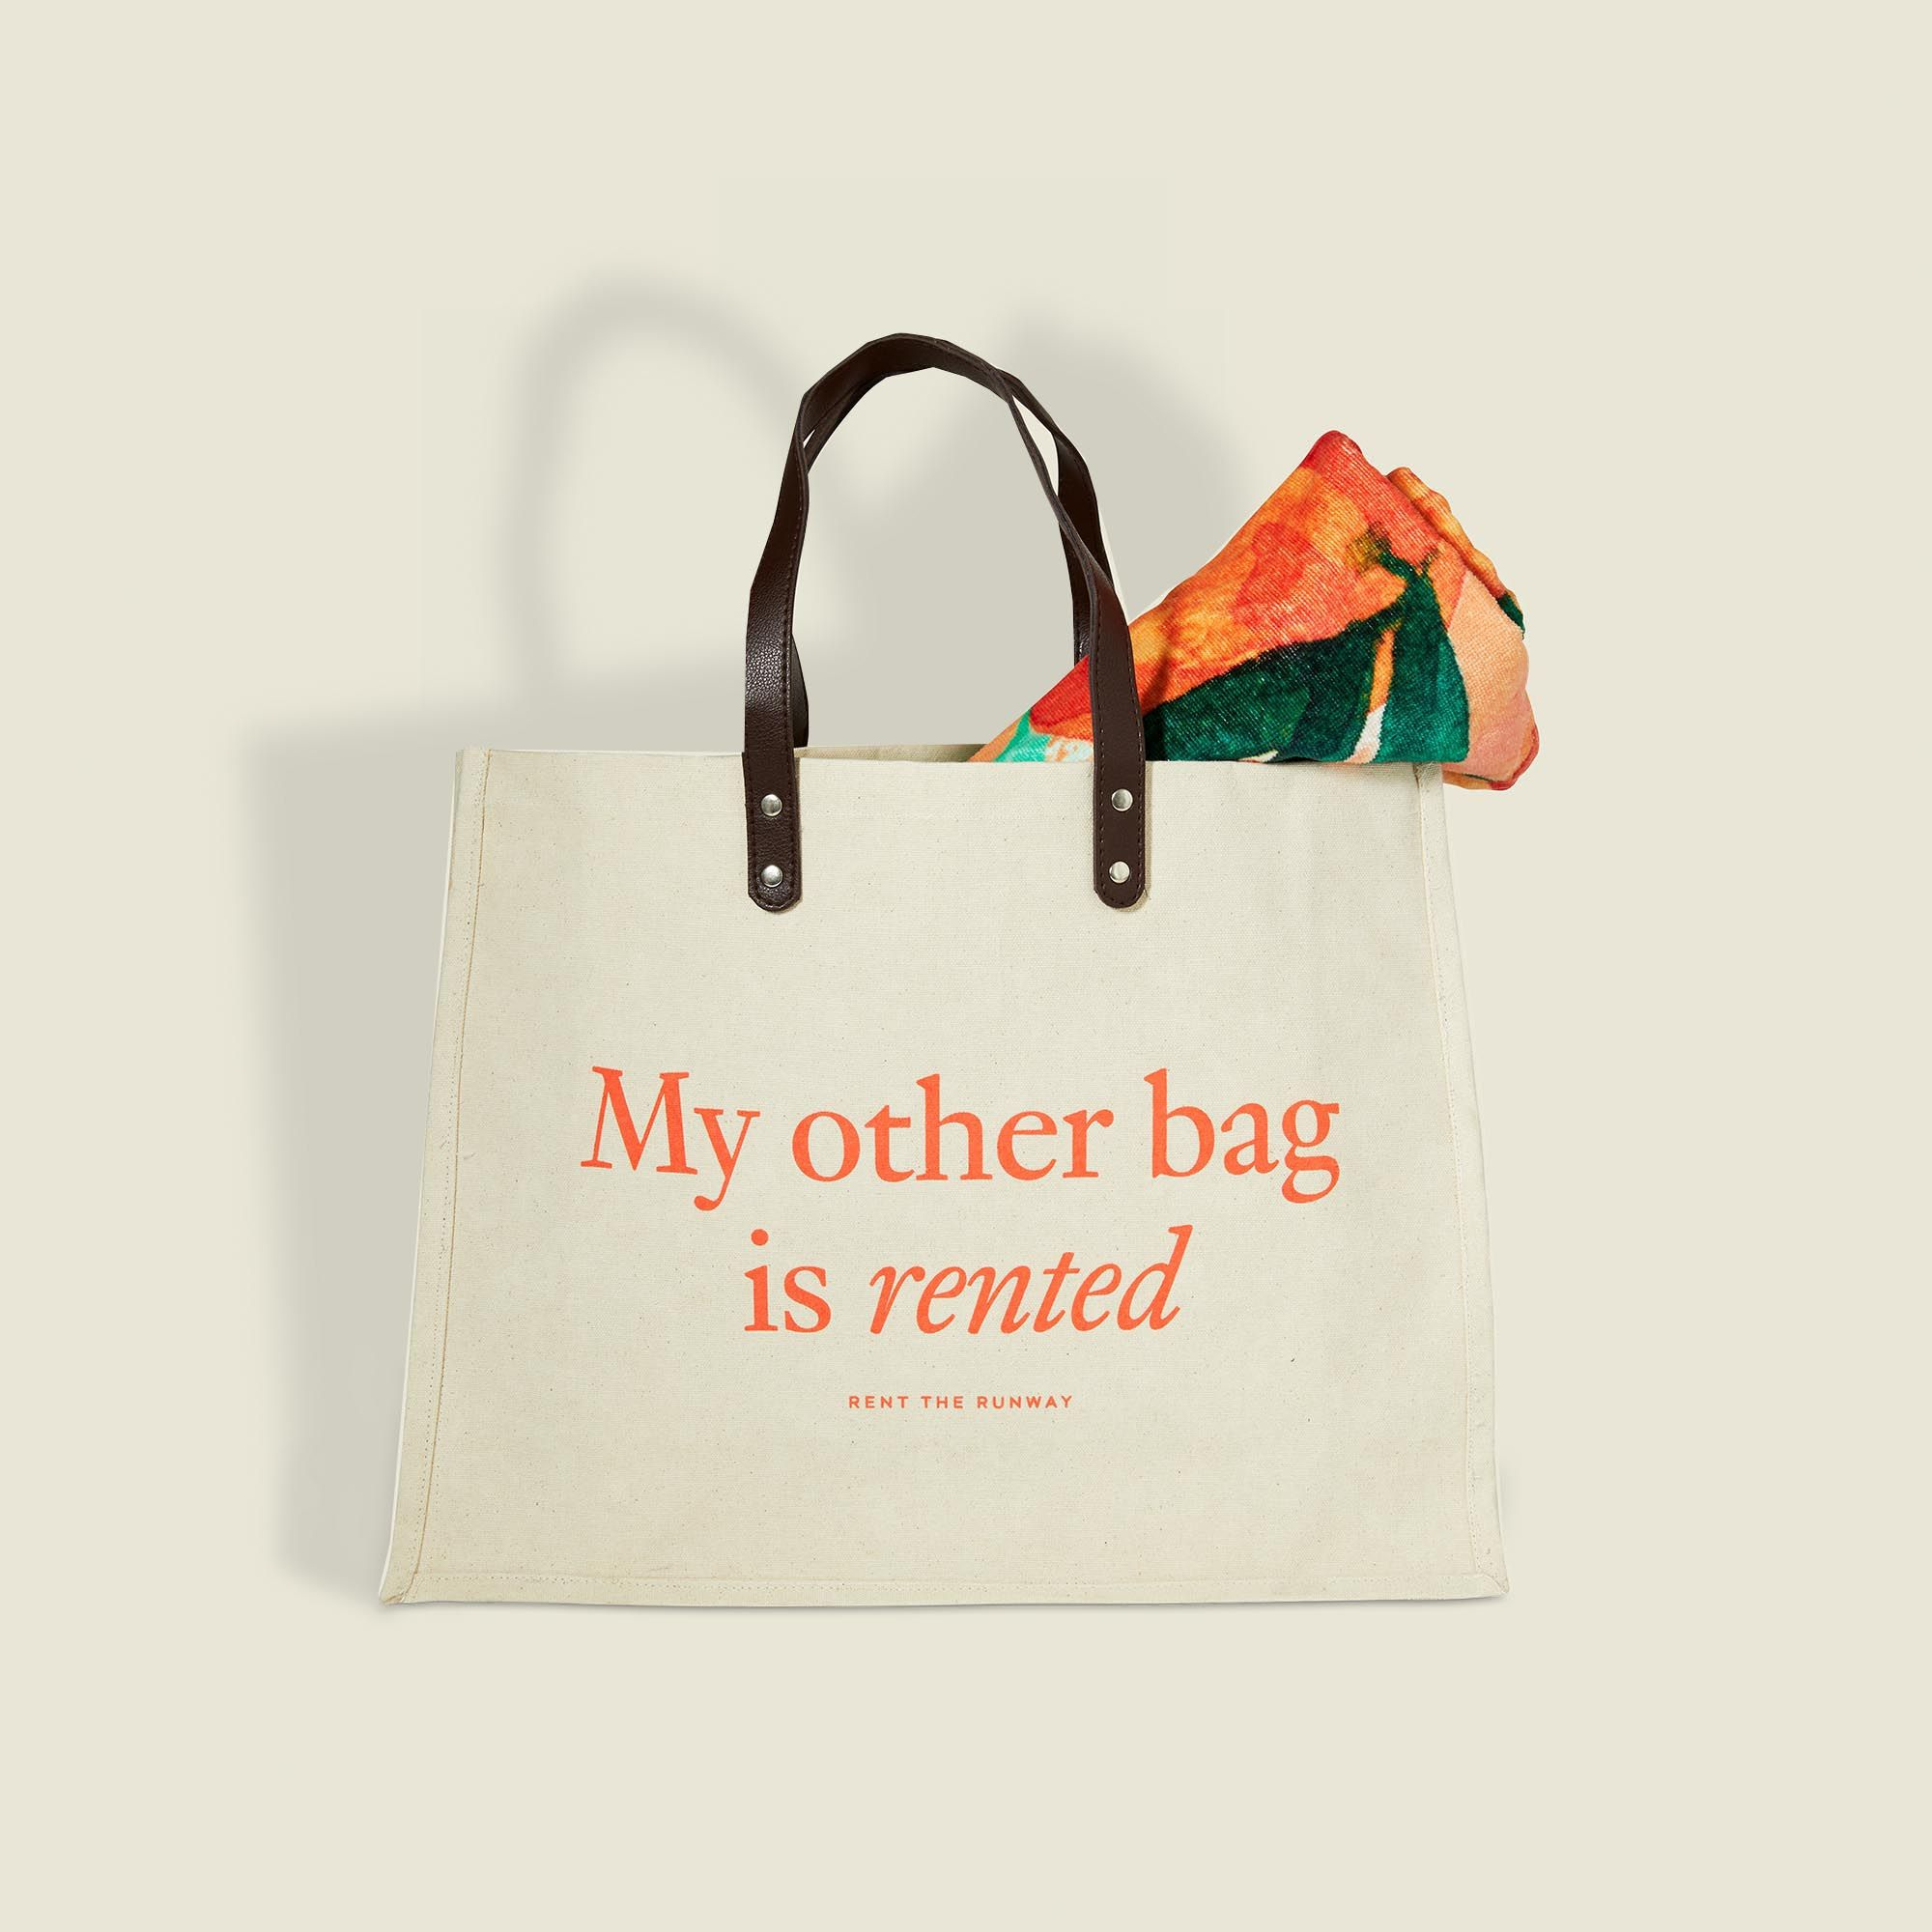 Tote bag with towel